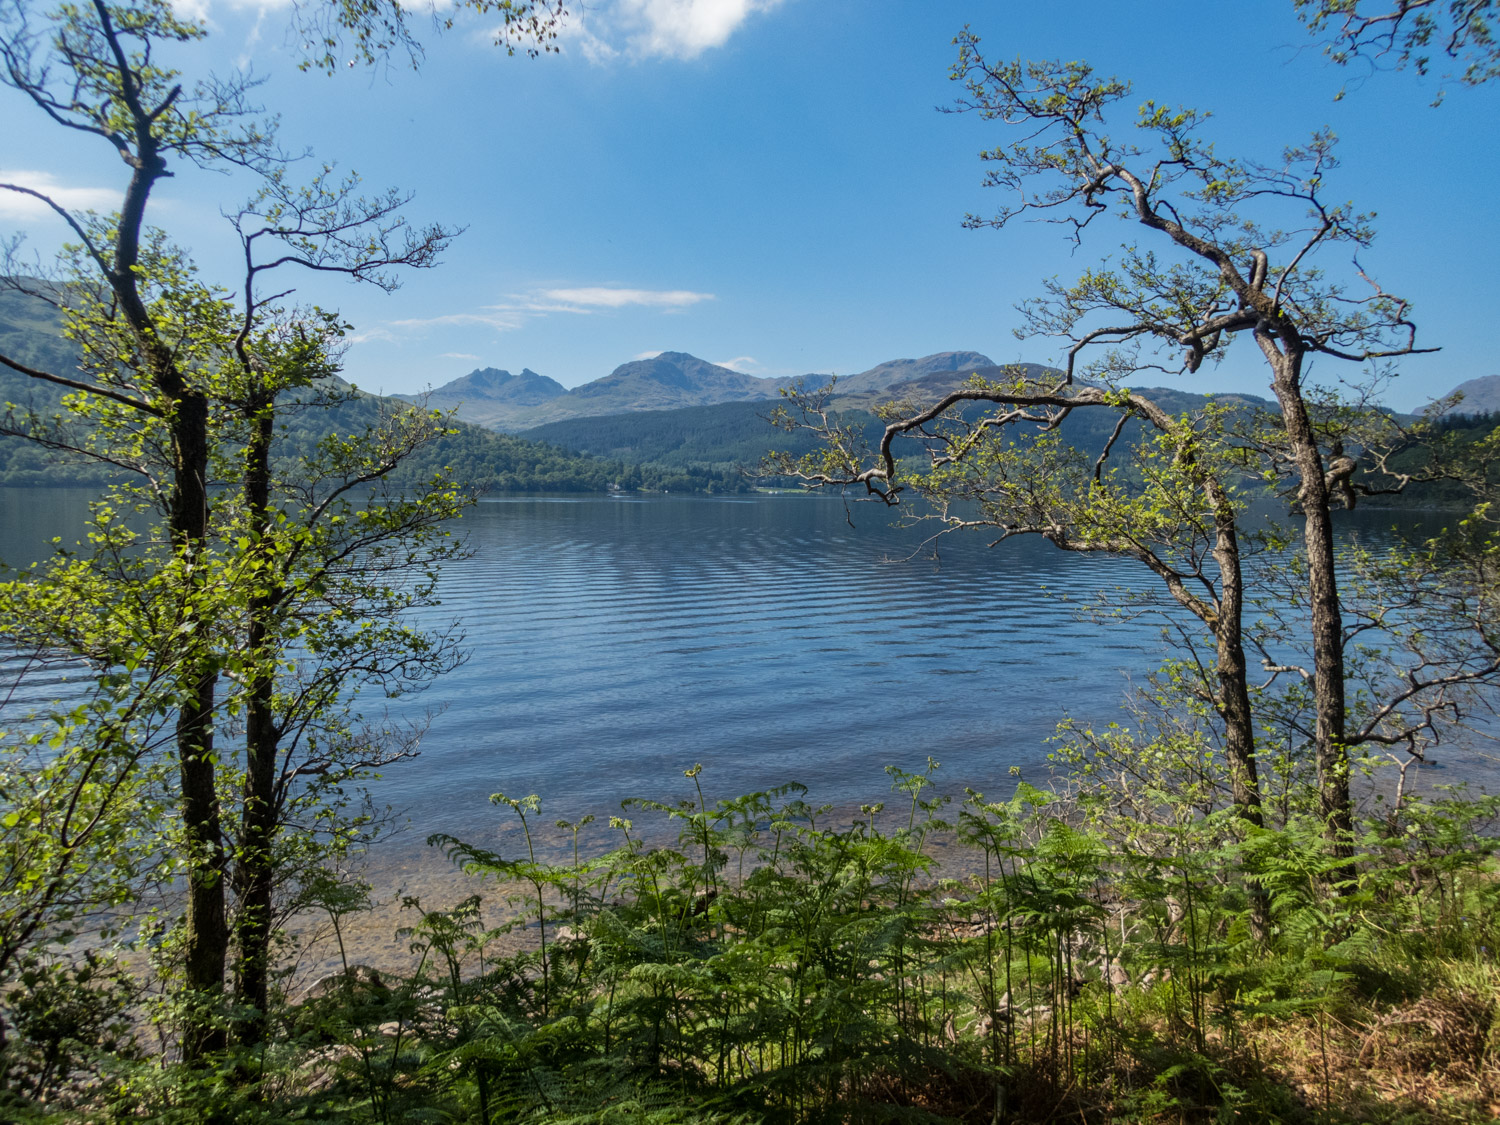 A perfect gap in the trees for a view over Loch Lomond to the Arrochar Alps with The Cobbler on the left.